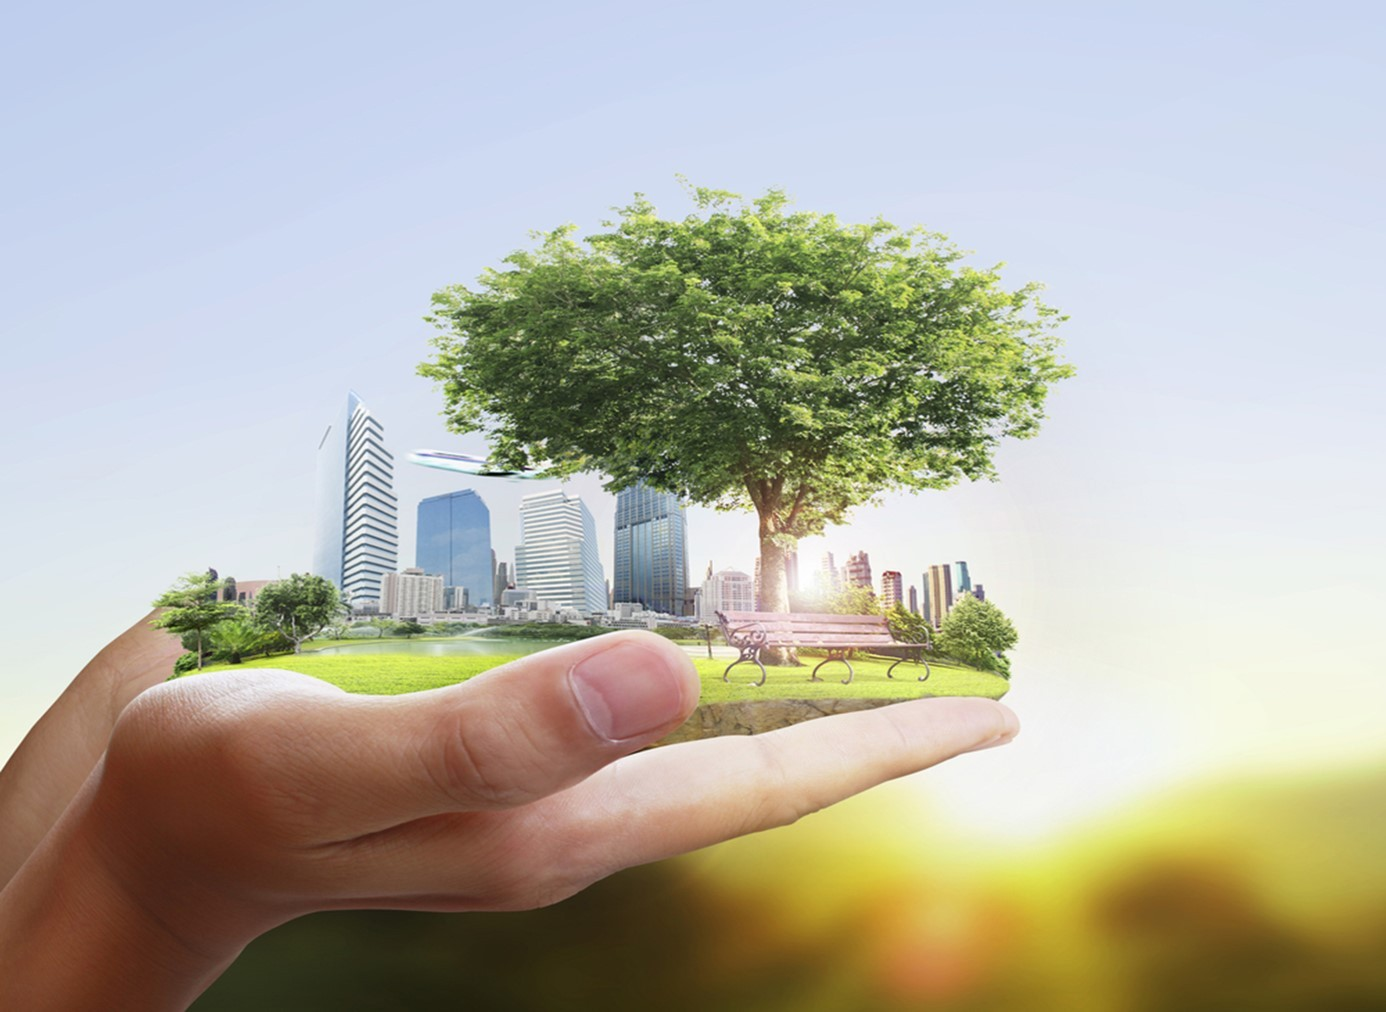 Local Committee to Keep Sustainability Efforts in the Public View